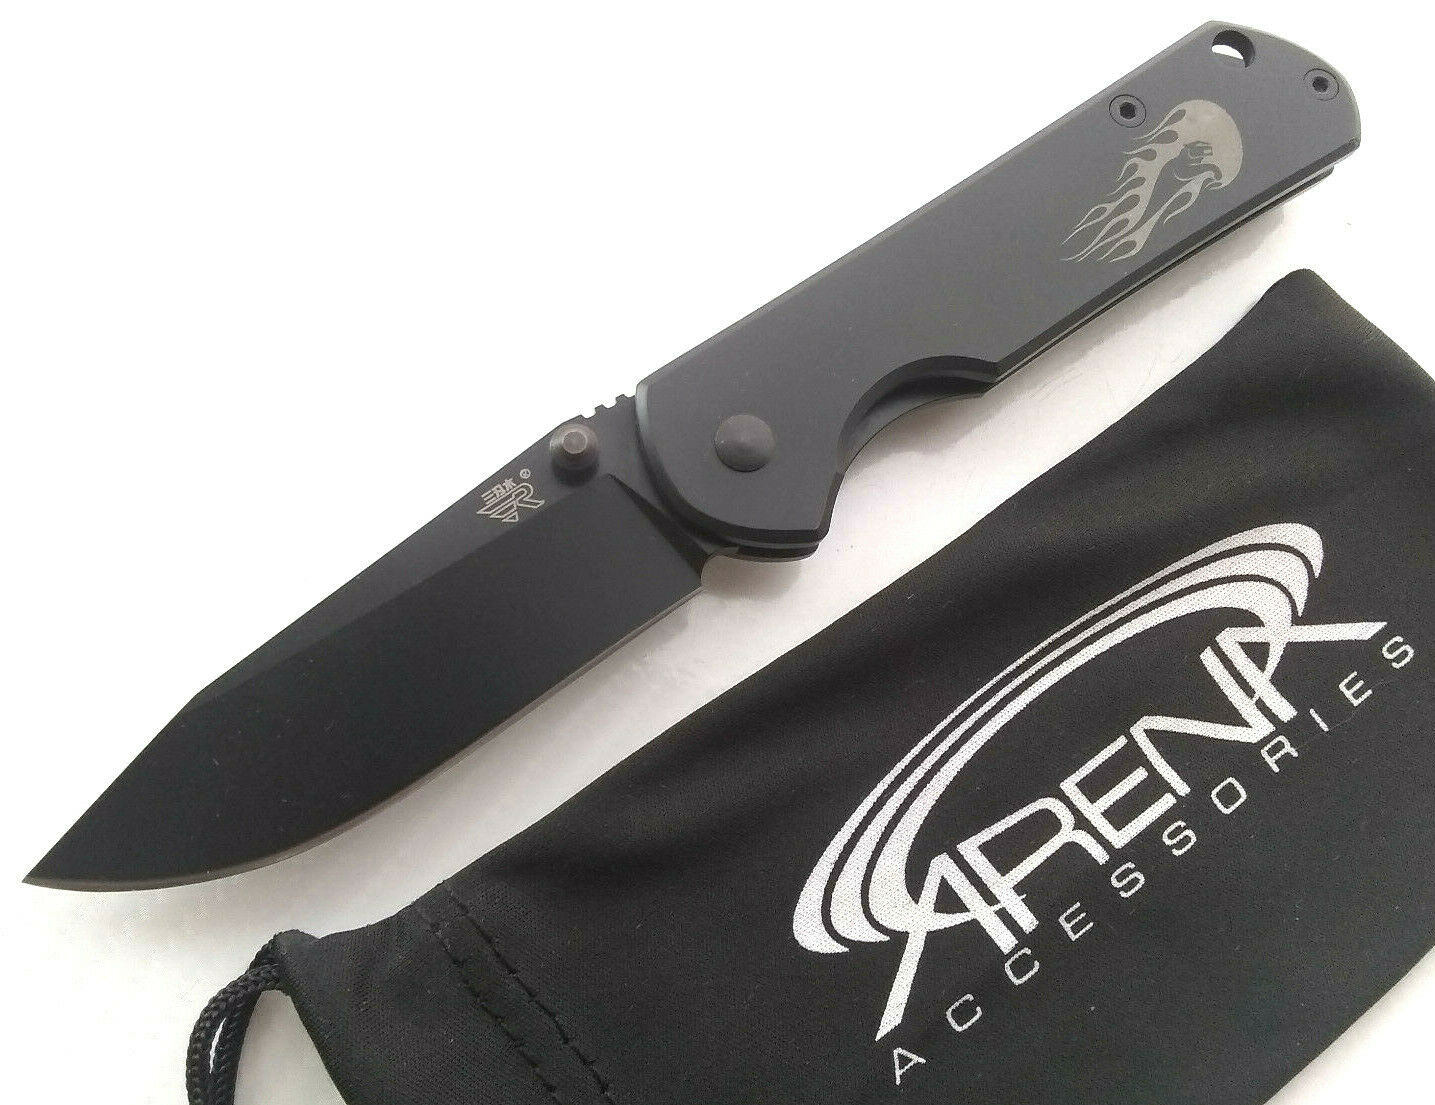 Sanrenmu SRM 7010 All Black Folder Pocket Knife 8Cr14 FrameLock Small Everyday Carry